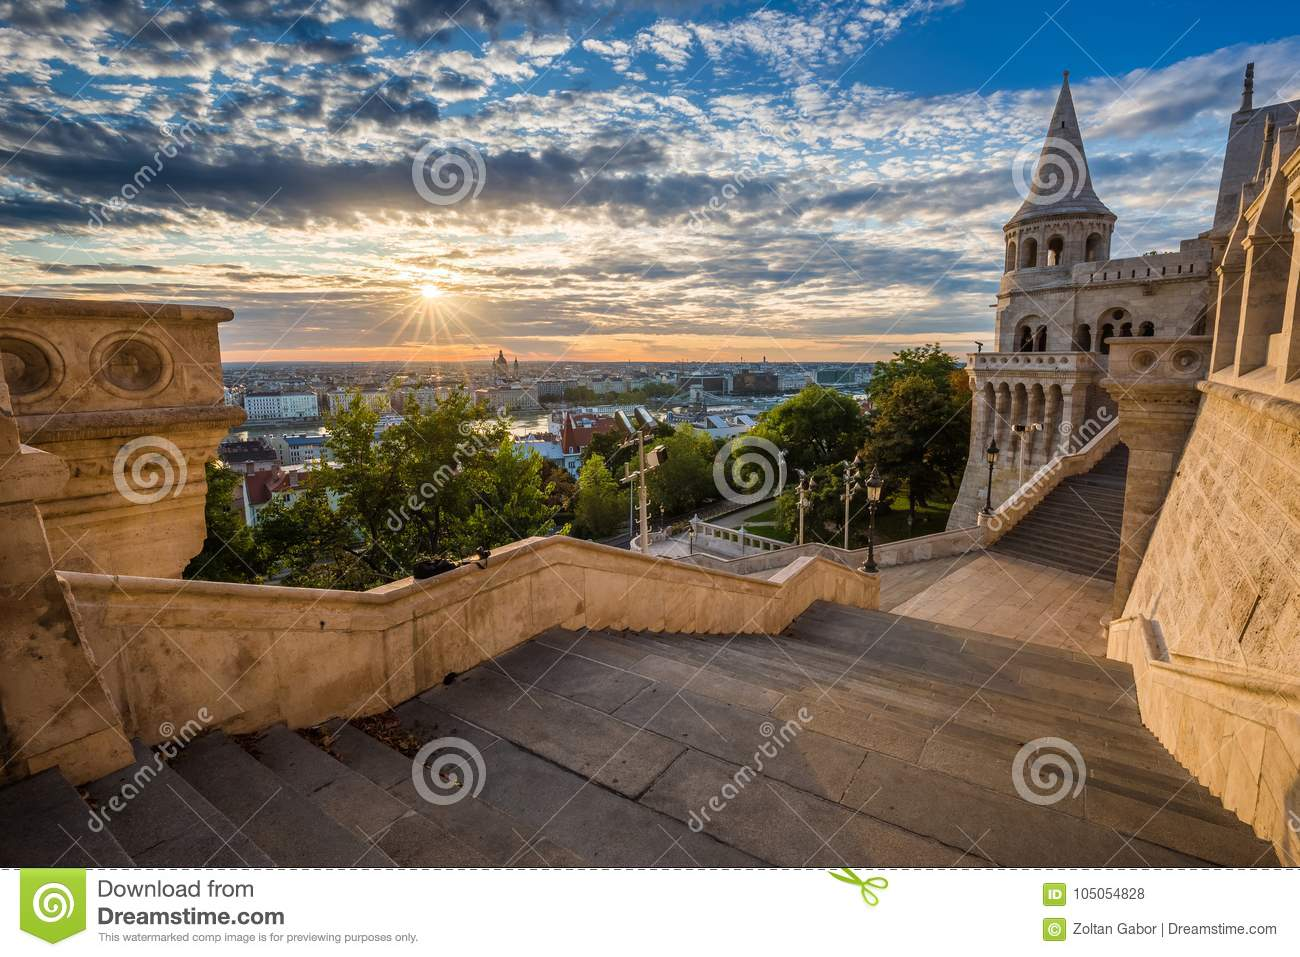 Budapest, Hungary - Staircase of the famous Fisherman Bastion on a beautiful sunny morning